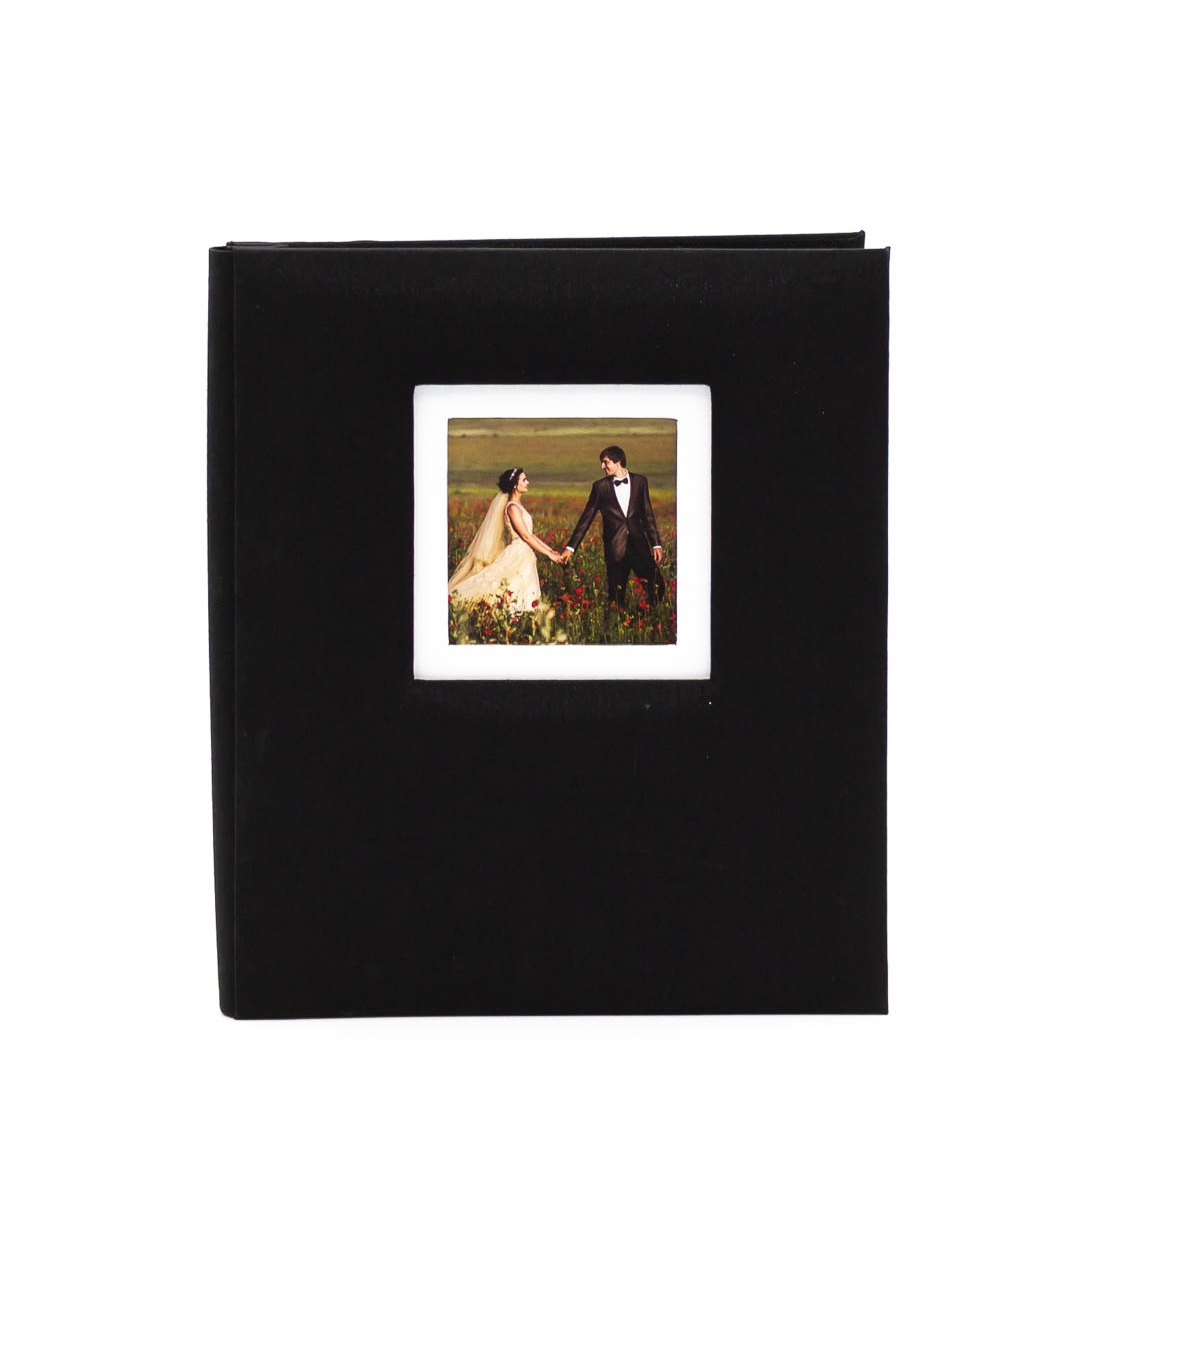 Park Lane 8.5\u0027\u0027x11\u0027\u0027 Scrapbook Album with Frame-Black